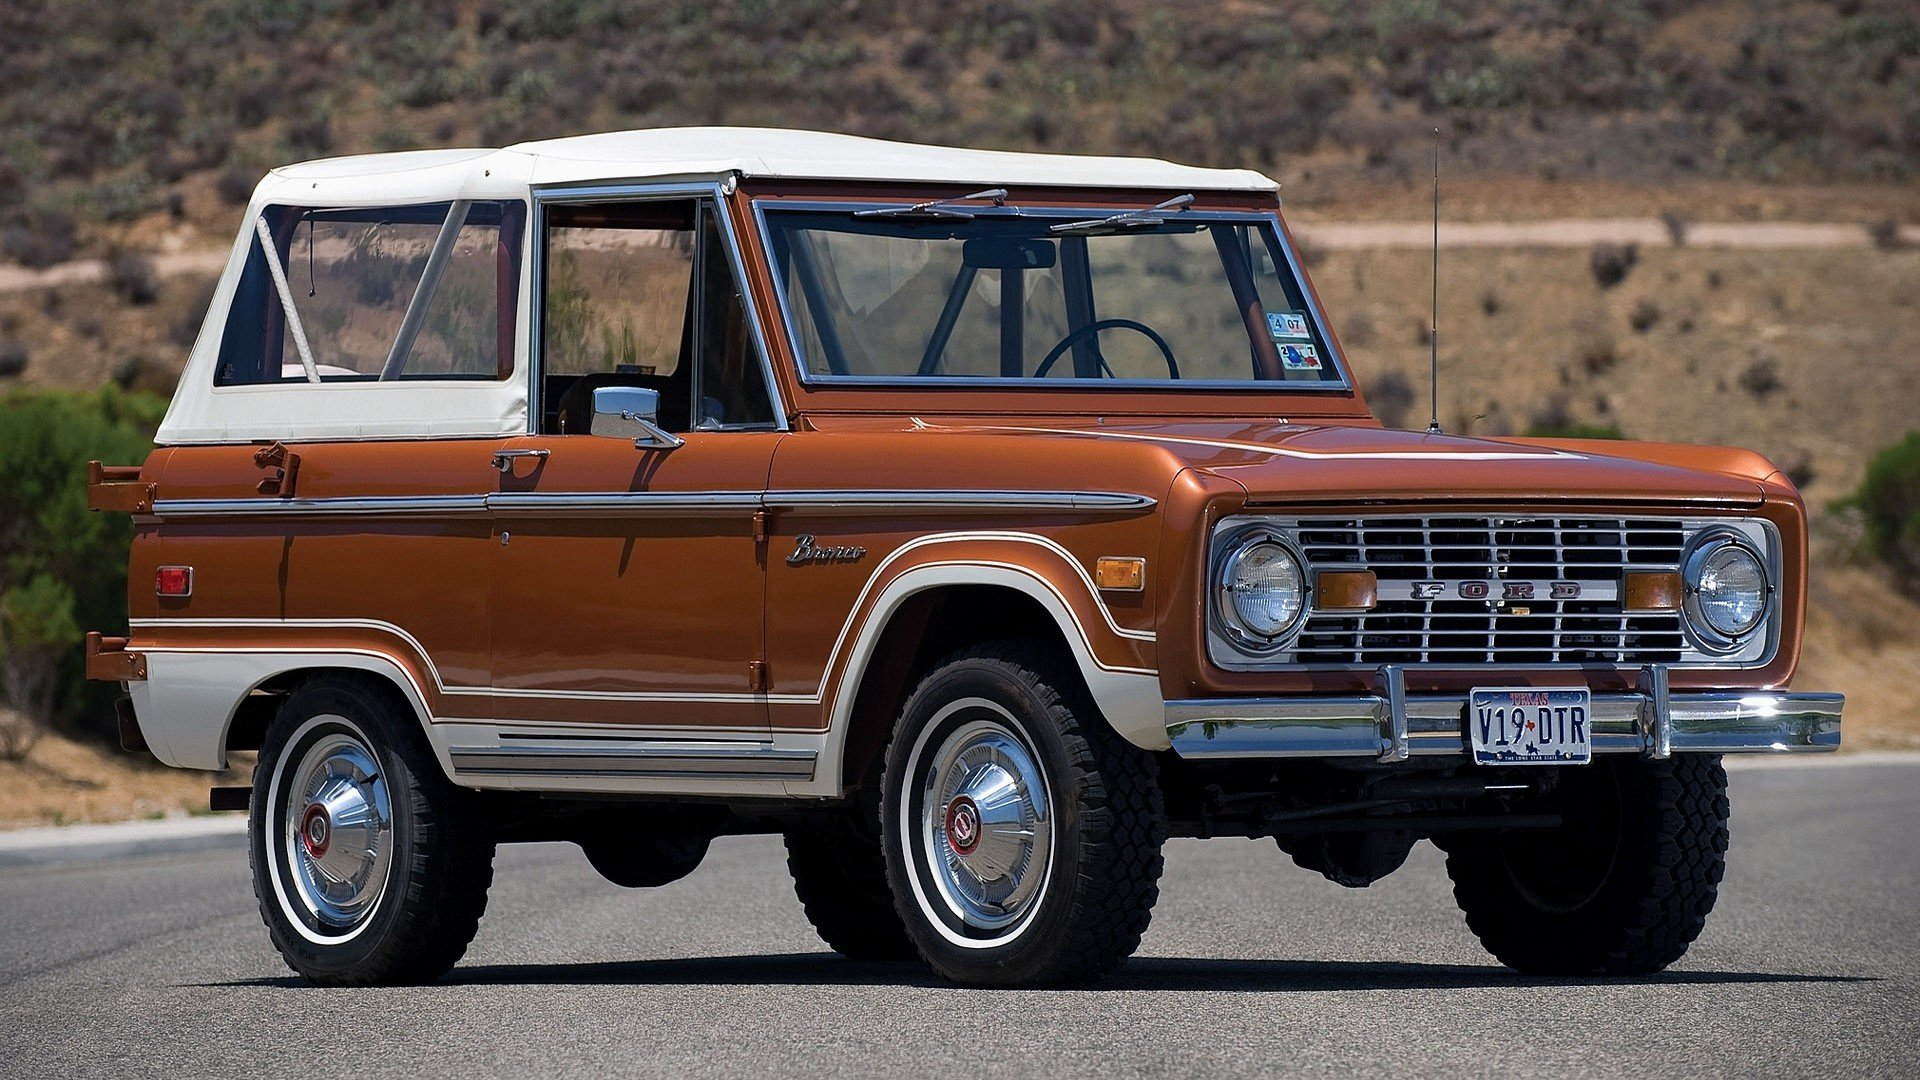 New Ford Bronco Could be Developed in Australia - The Drive